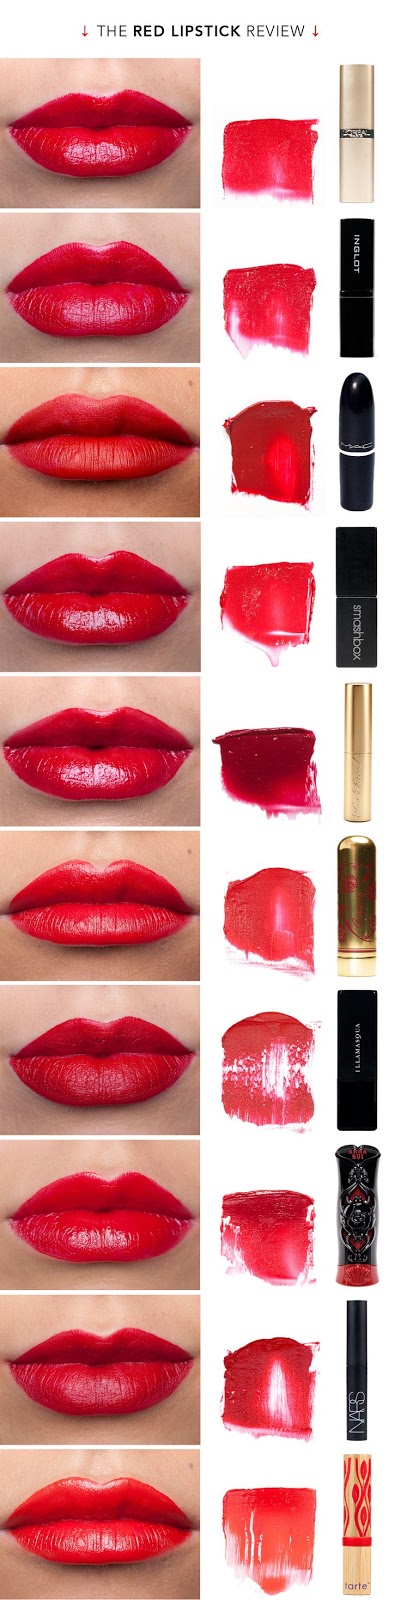 The best red lipsticks to have in your collection, from classic shades to newer additions